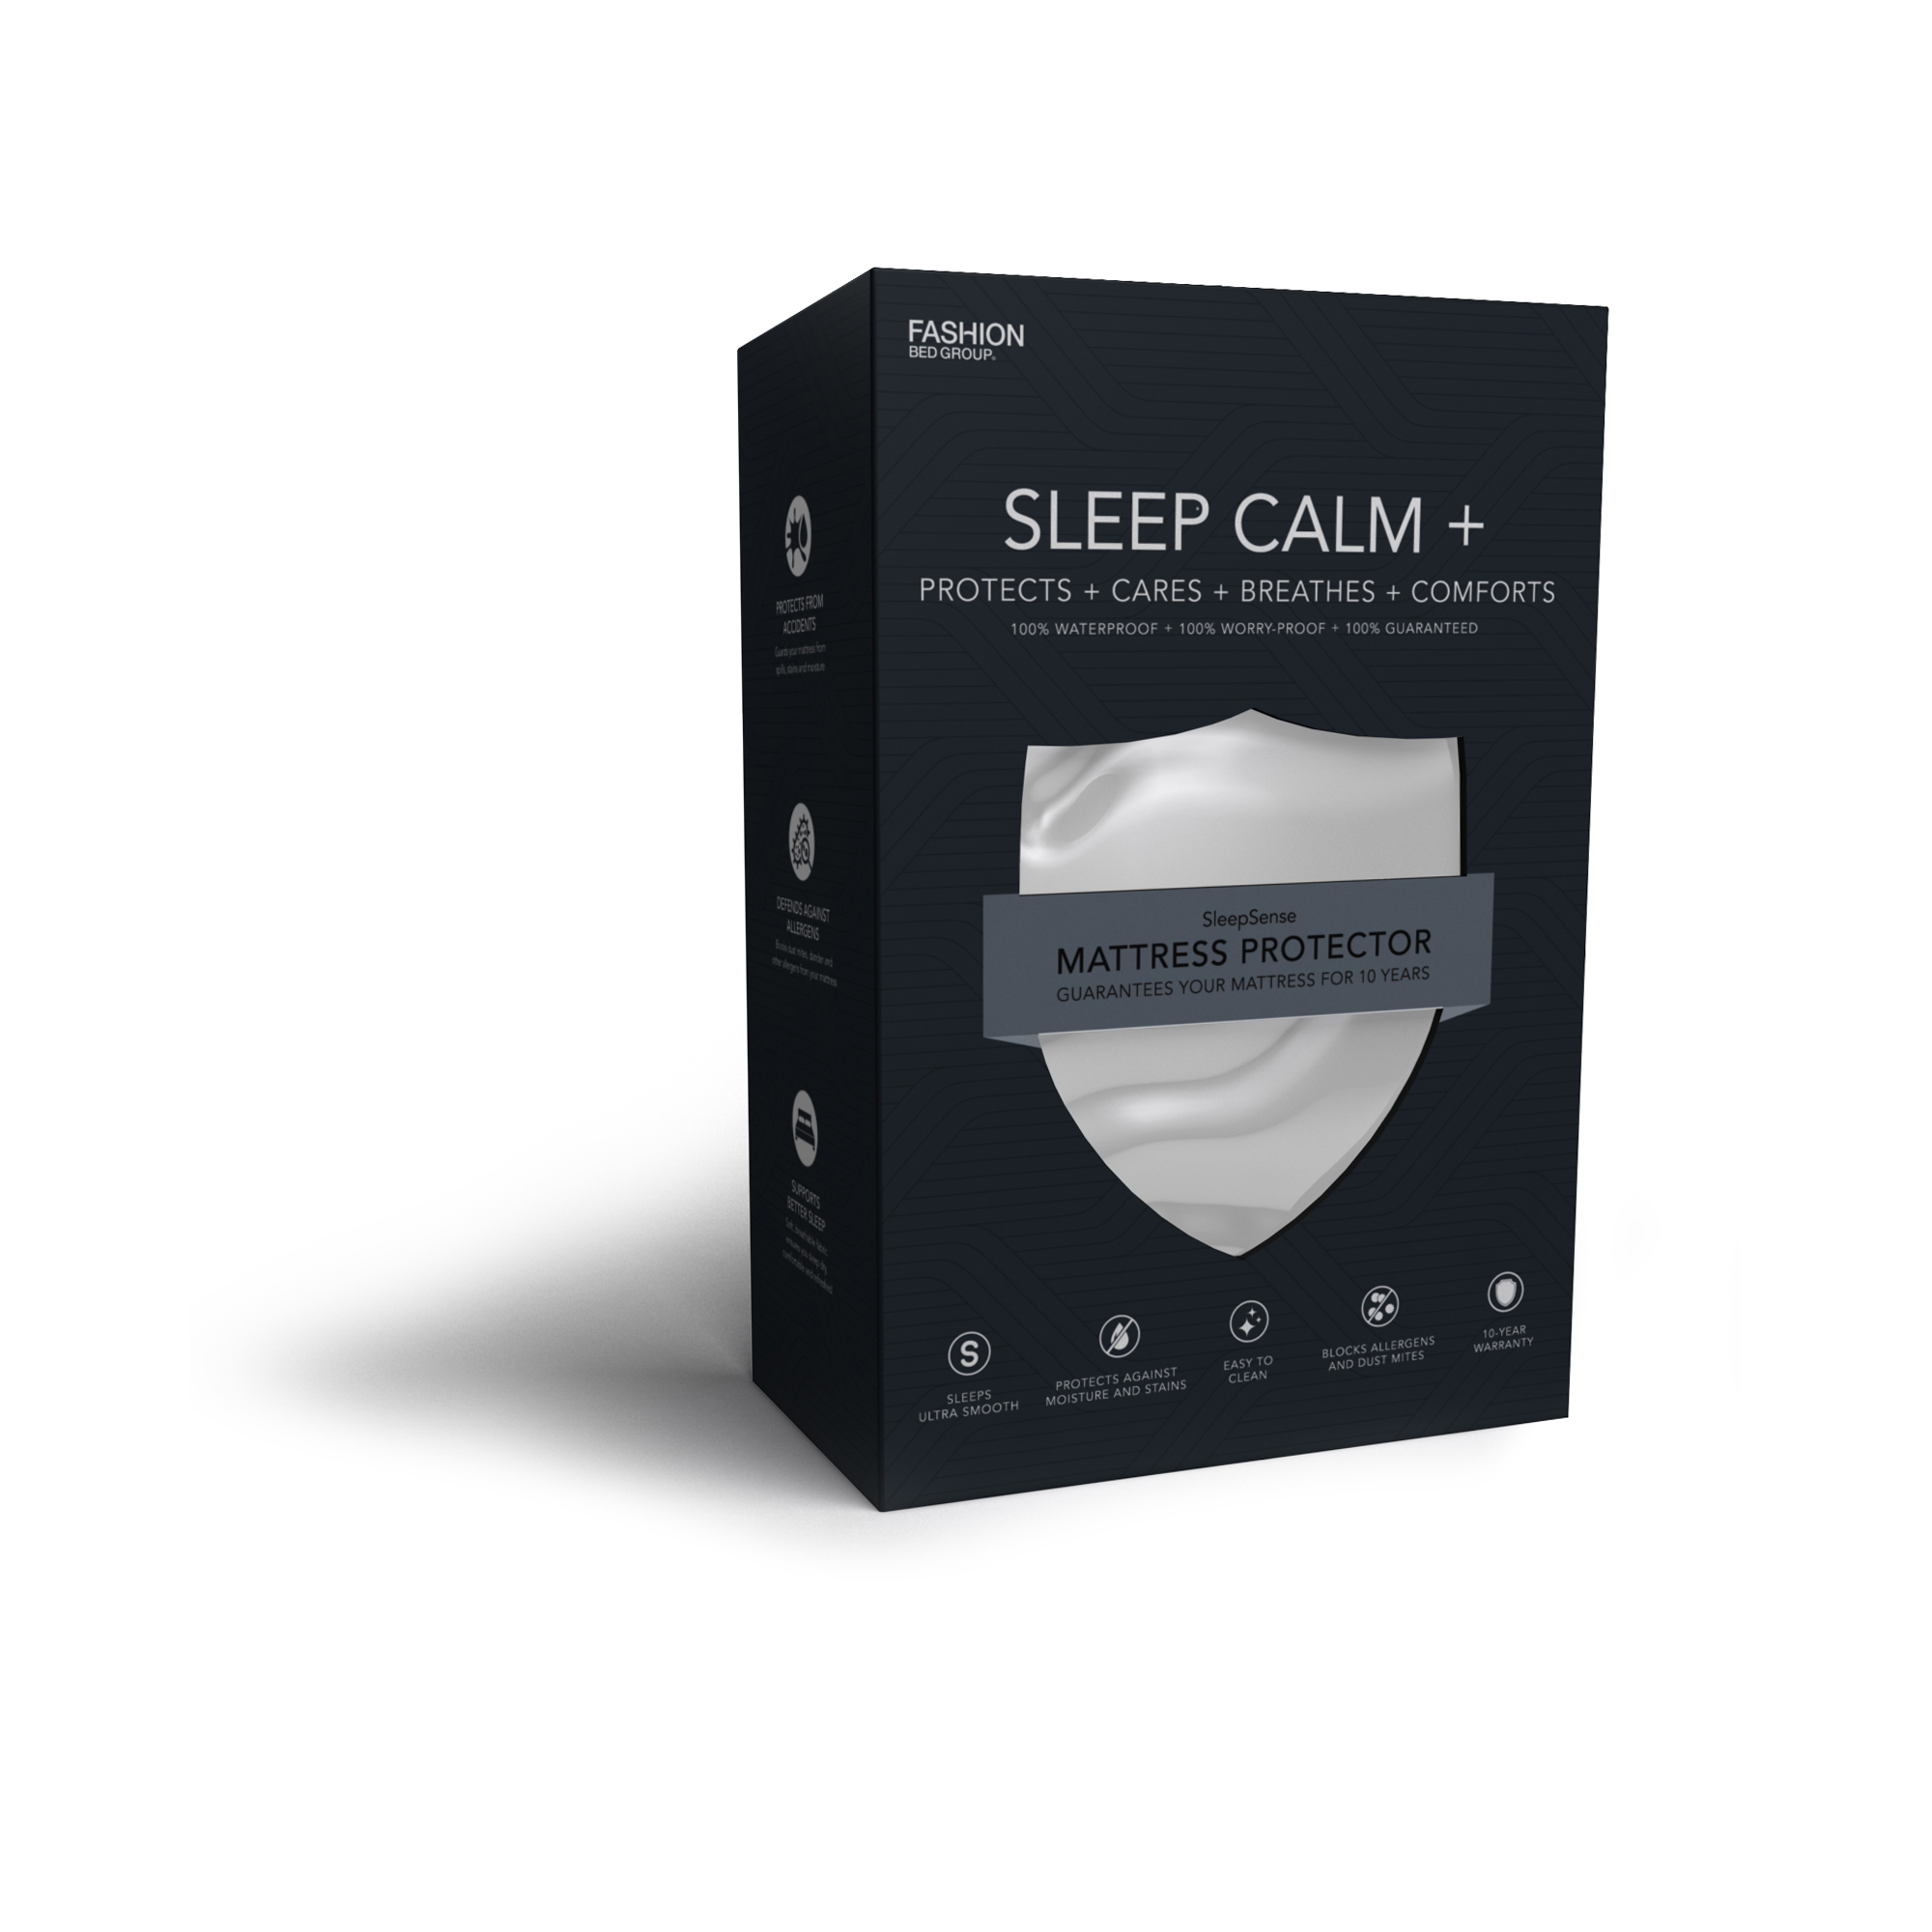 Sleep Calm + Ultra-Premium Mattress Protector Bed SHeet with Moisture and Bacteria... by Fashion Bed Group